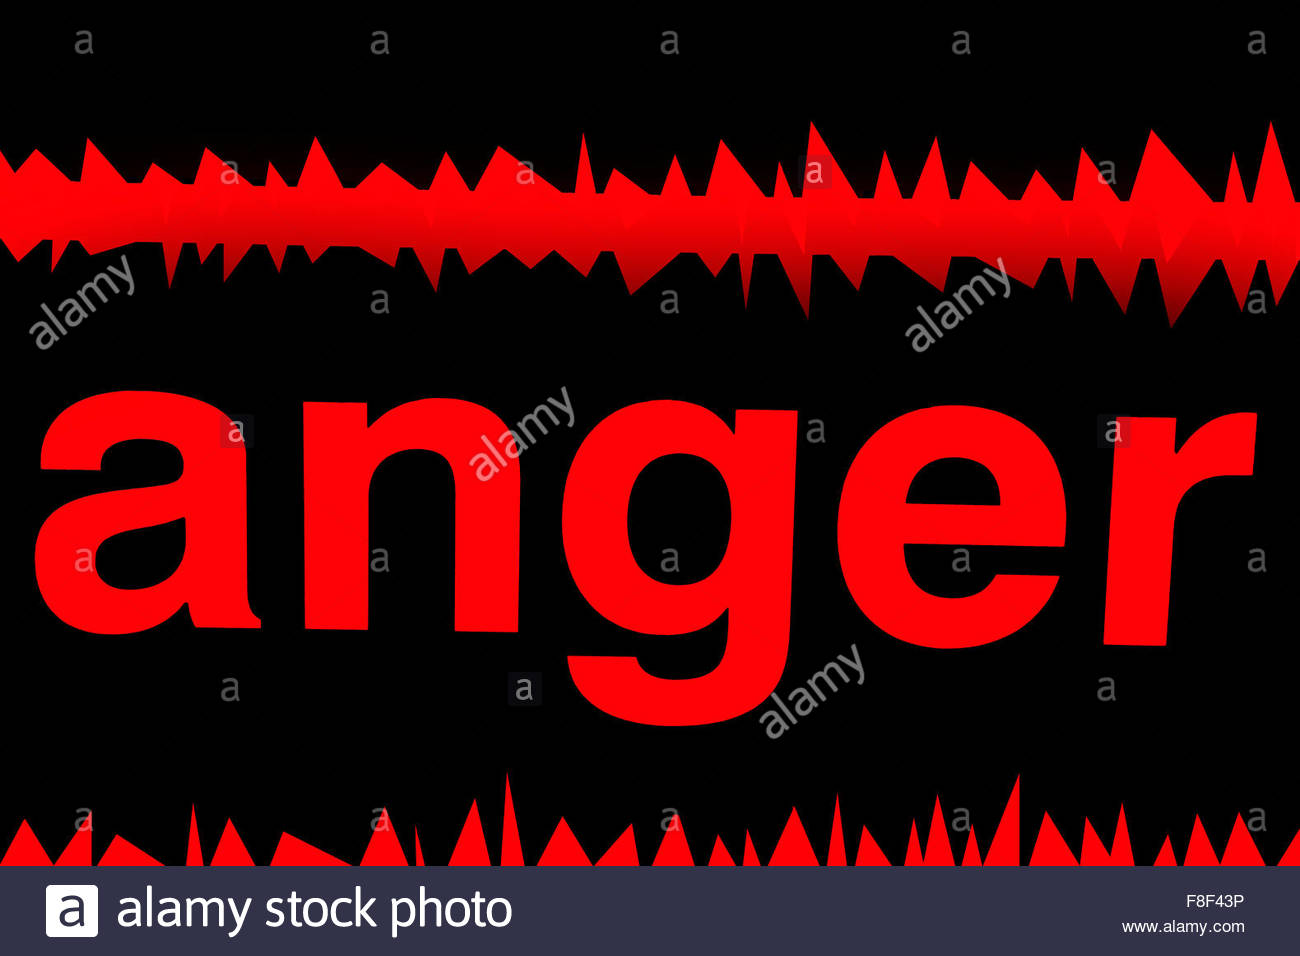 Anger Stock Photos & Anger Stock Images - Alamy